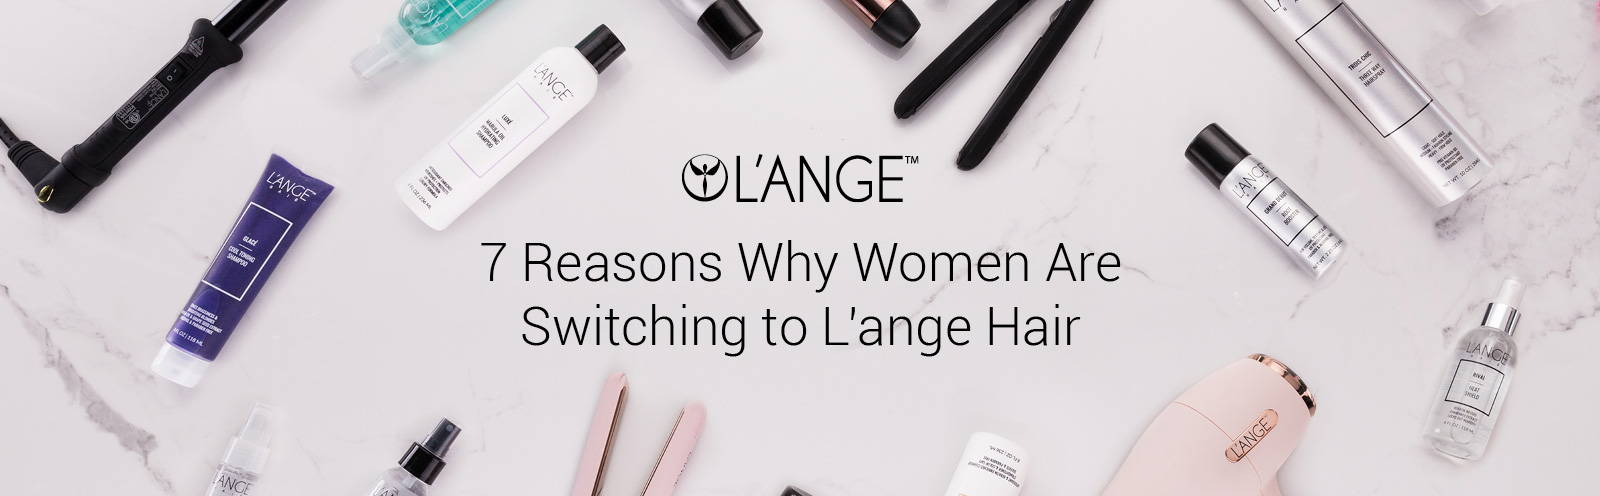 7 Reasons Why Women are Switching to L'ange Hair